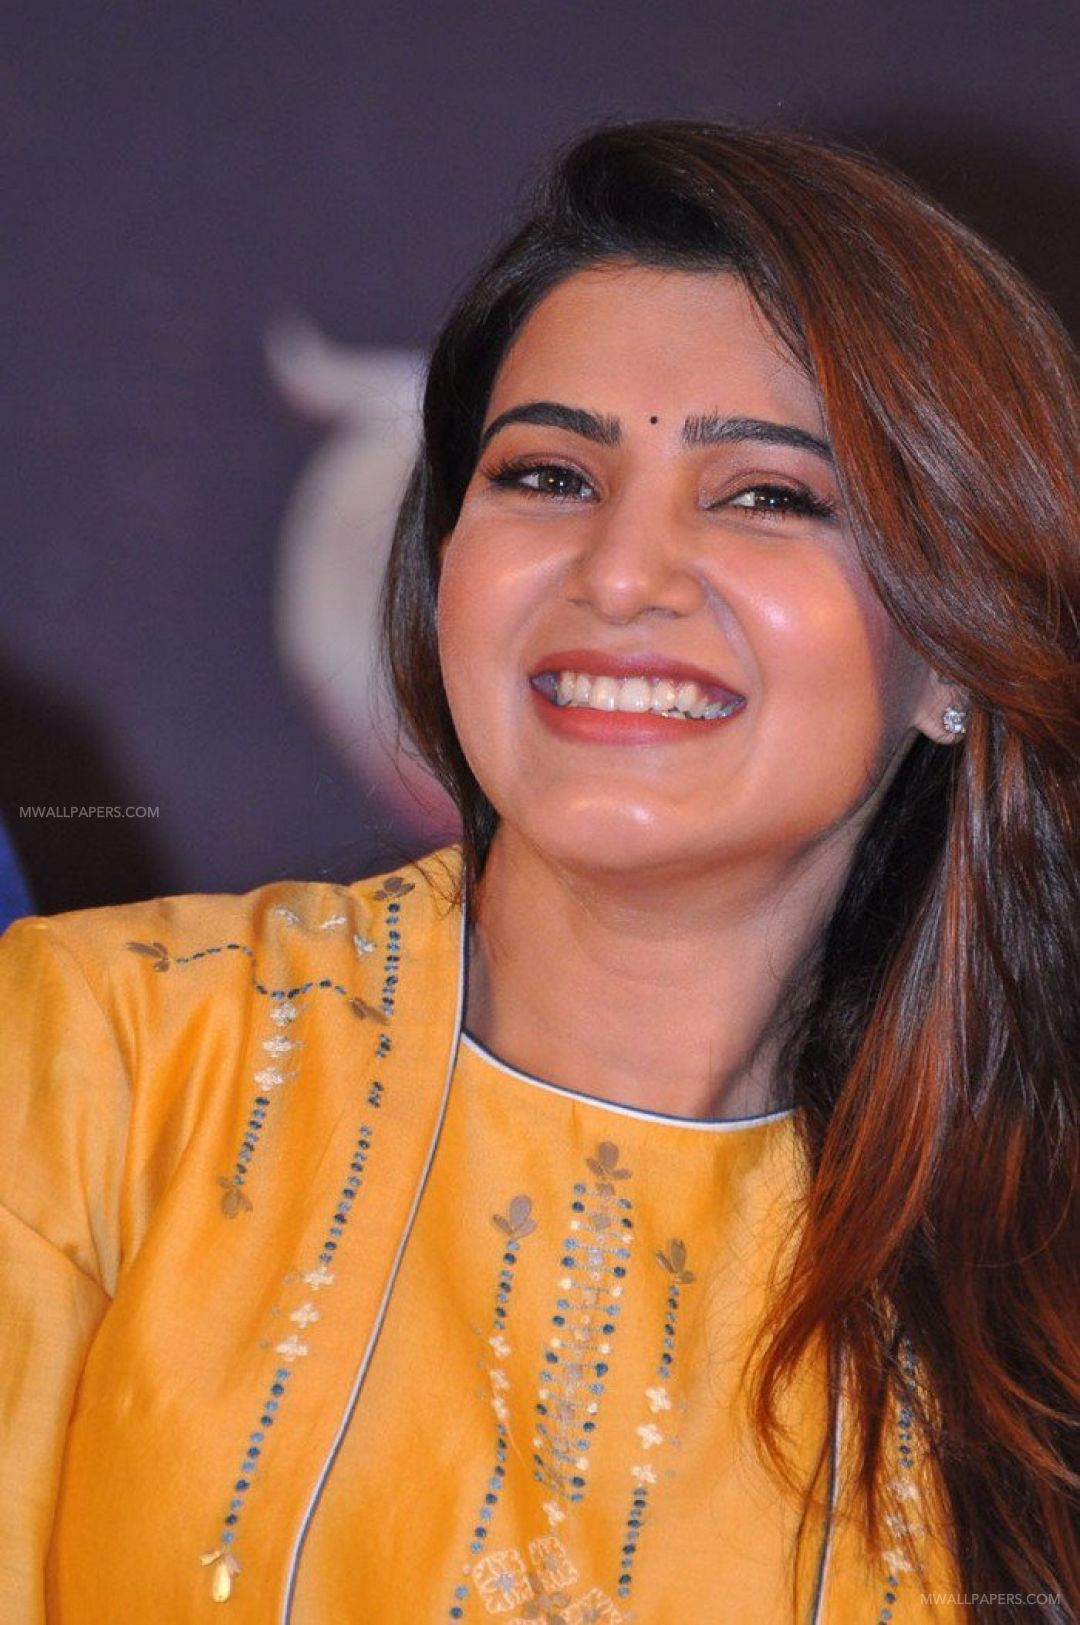 Samantha HD Wallpapers (Desktop Background / Android / iPhone) (1080p, 4k) (39734) - Samantha